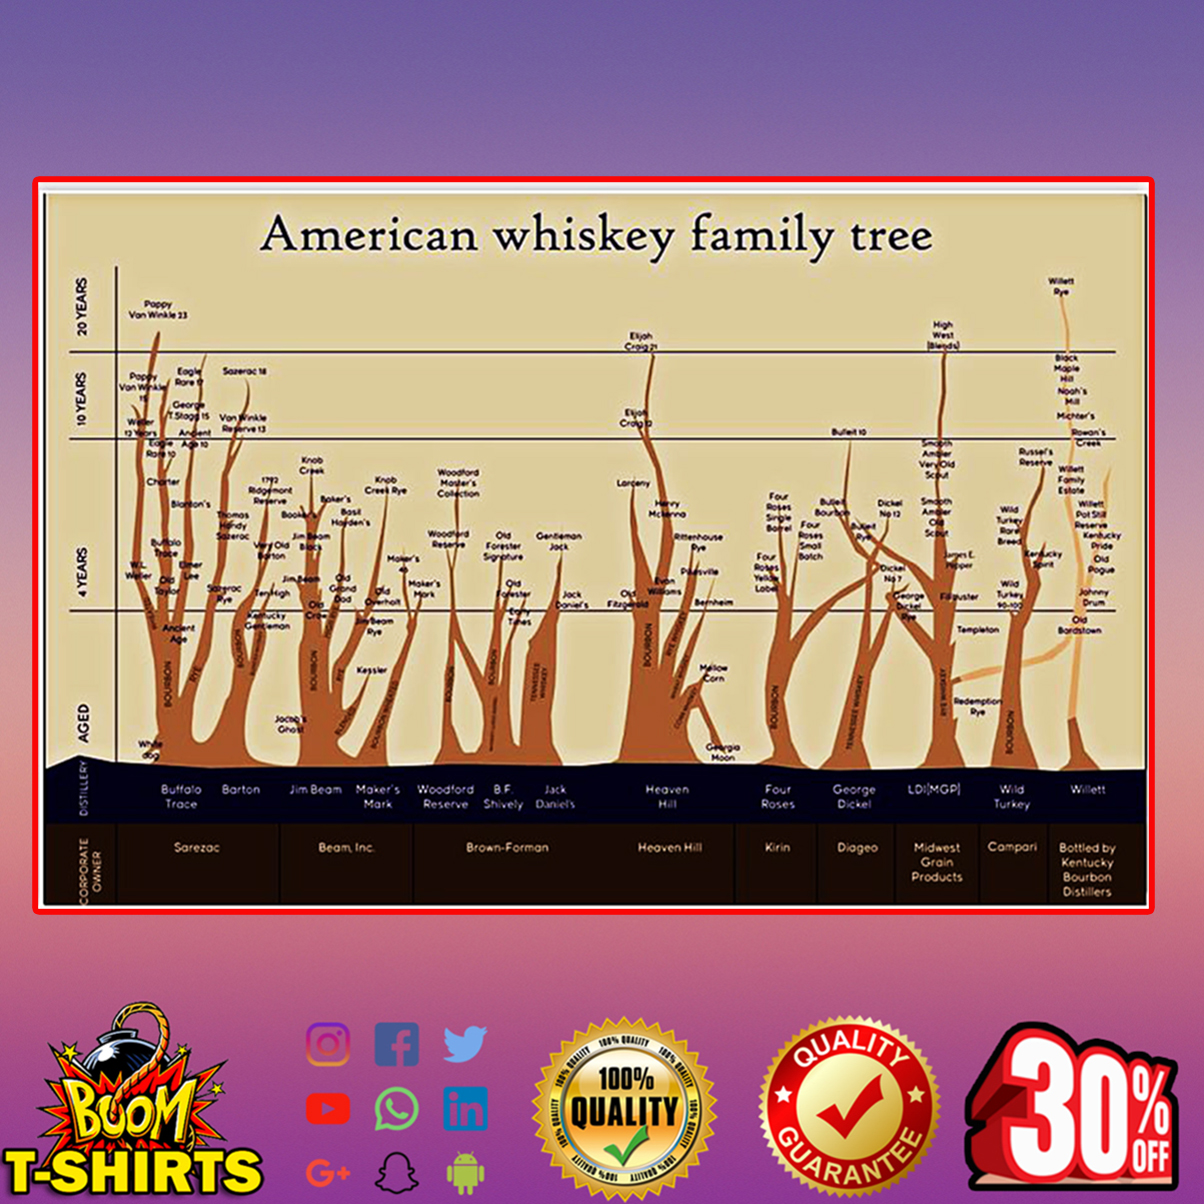 American whiskey family tree poster